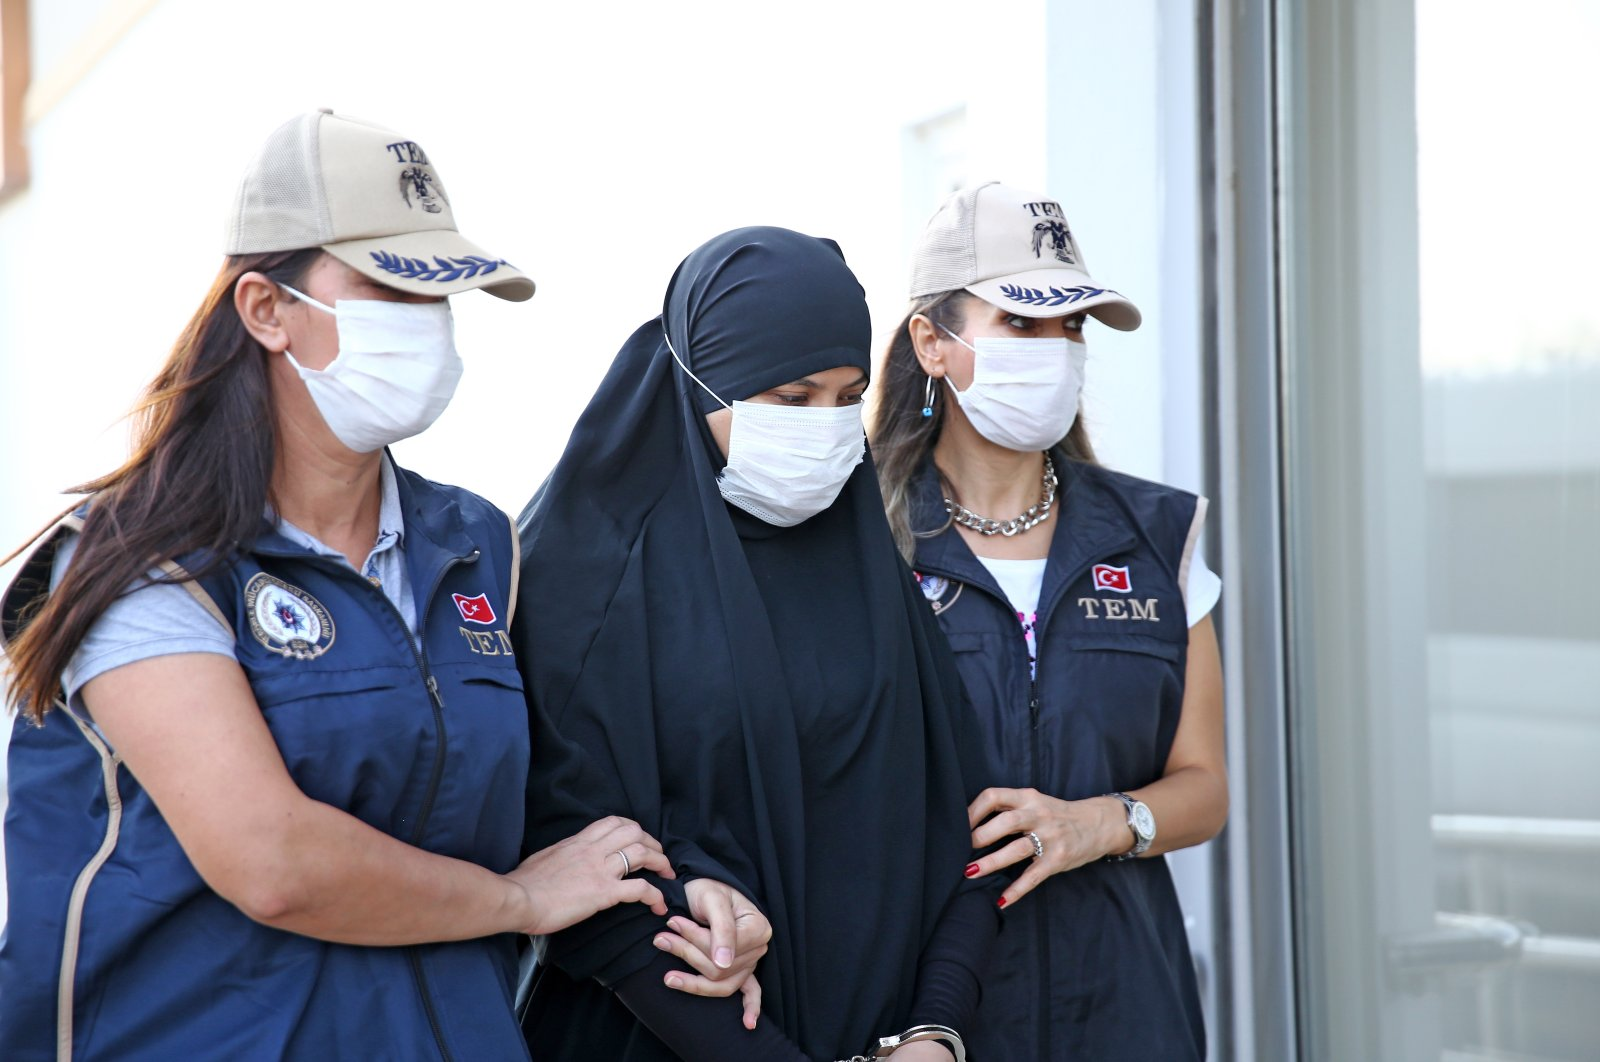 Wanted Daesh terrorist Soumaya Raissi is escorted by Turkish security forces after being taken into custody, in Adana, Turkey, Oct. 16, 2020. (AA Photo)